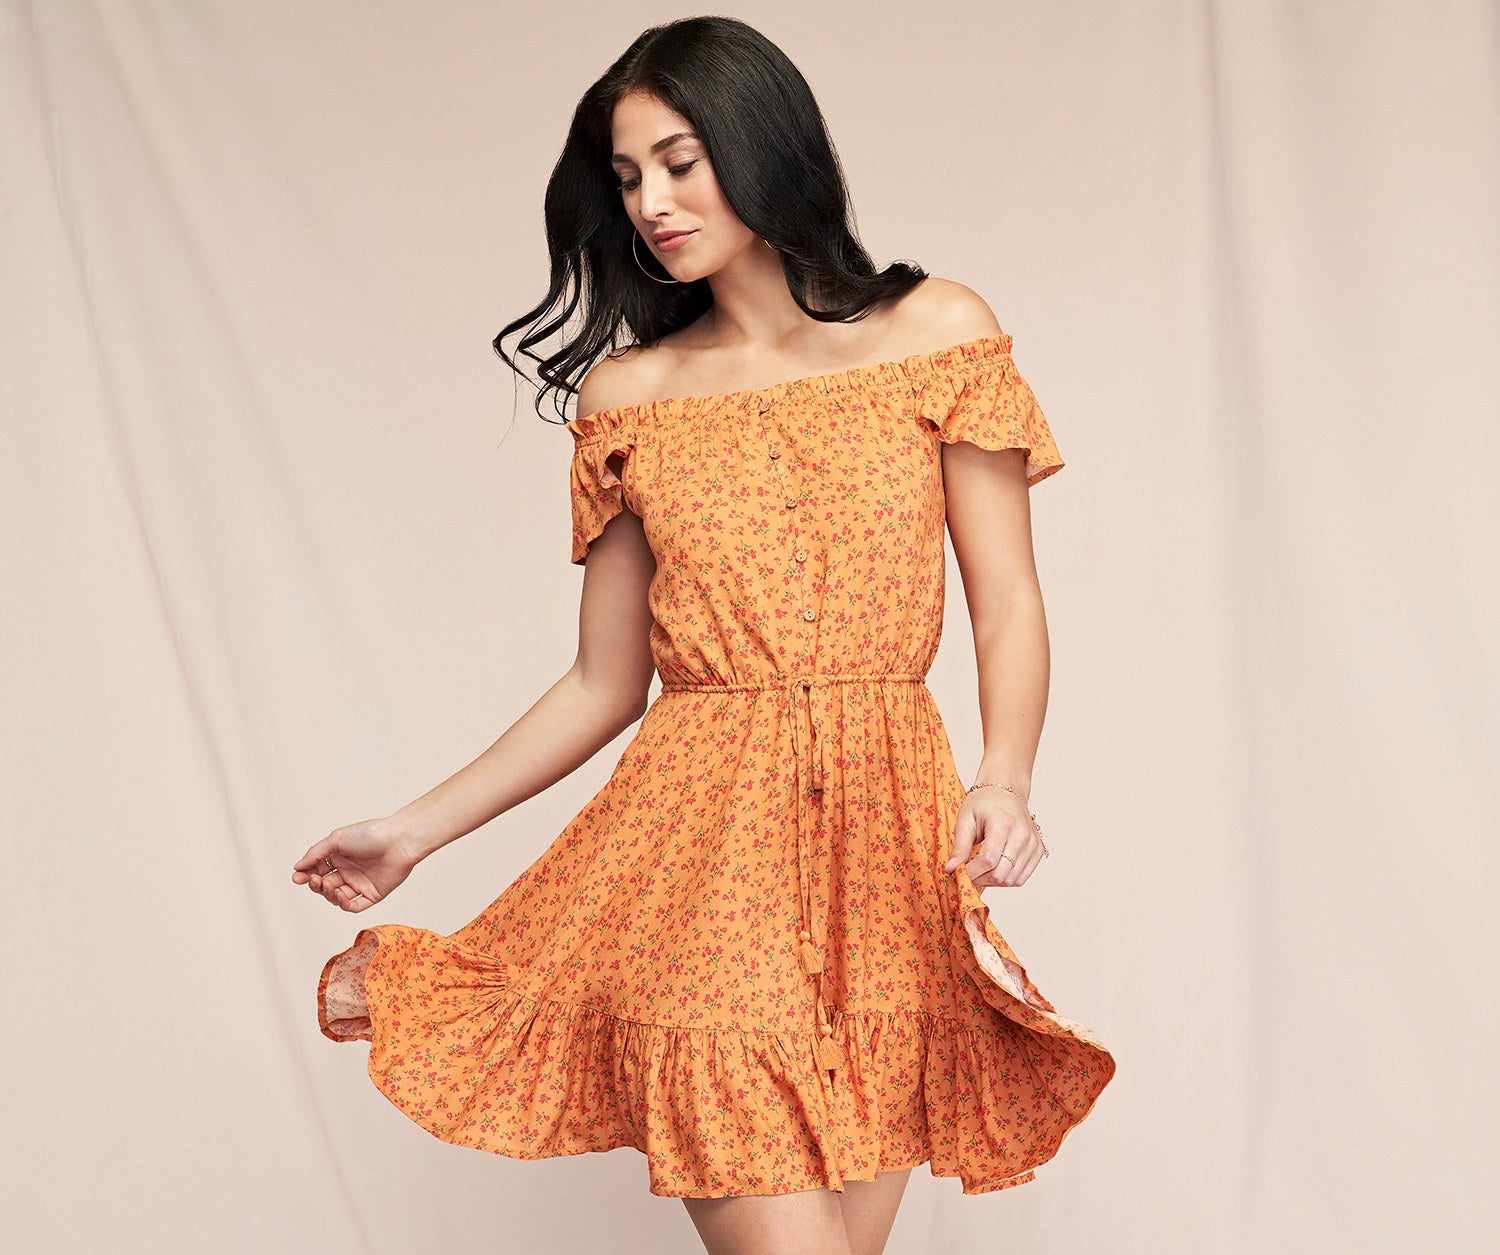 a model in the orange sun dress covered in tiny florals